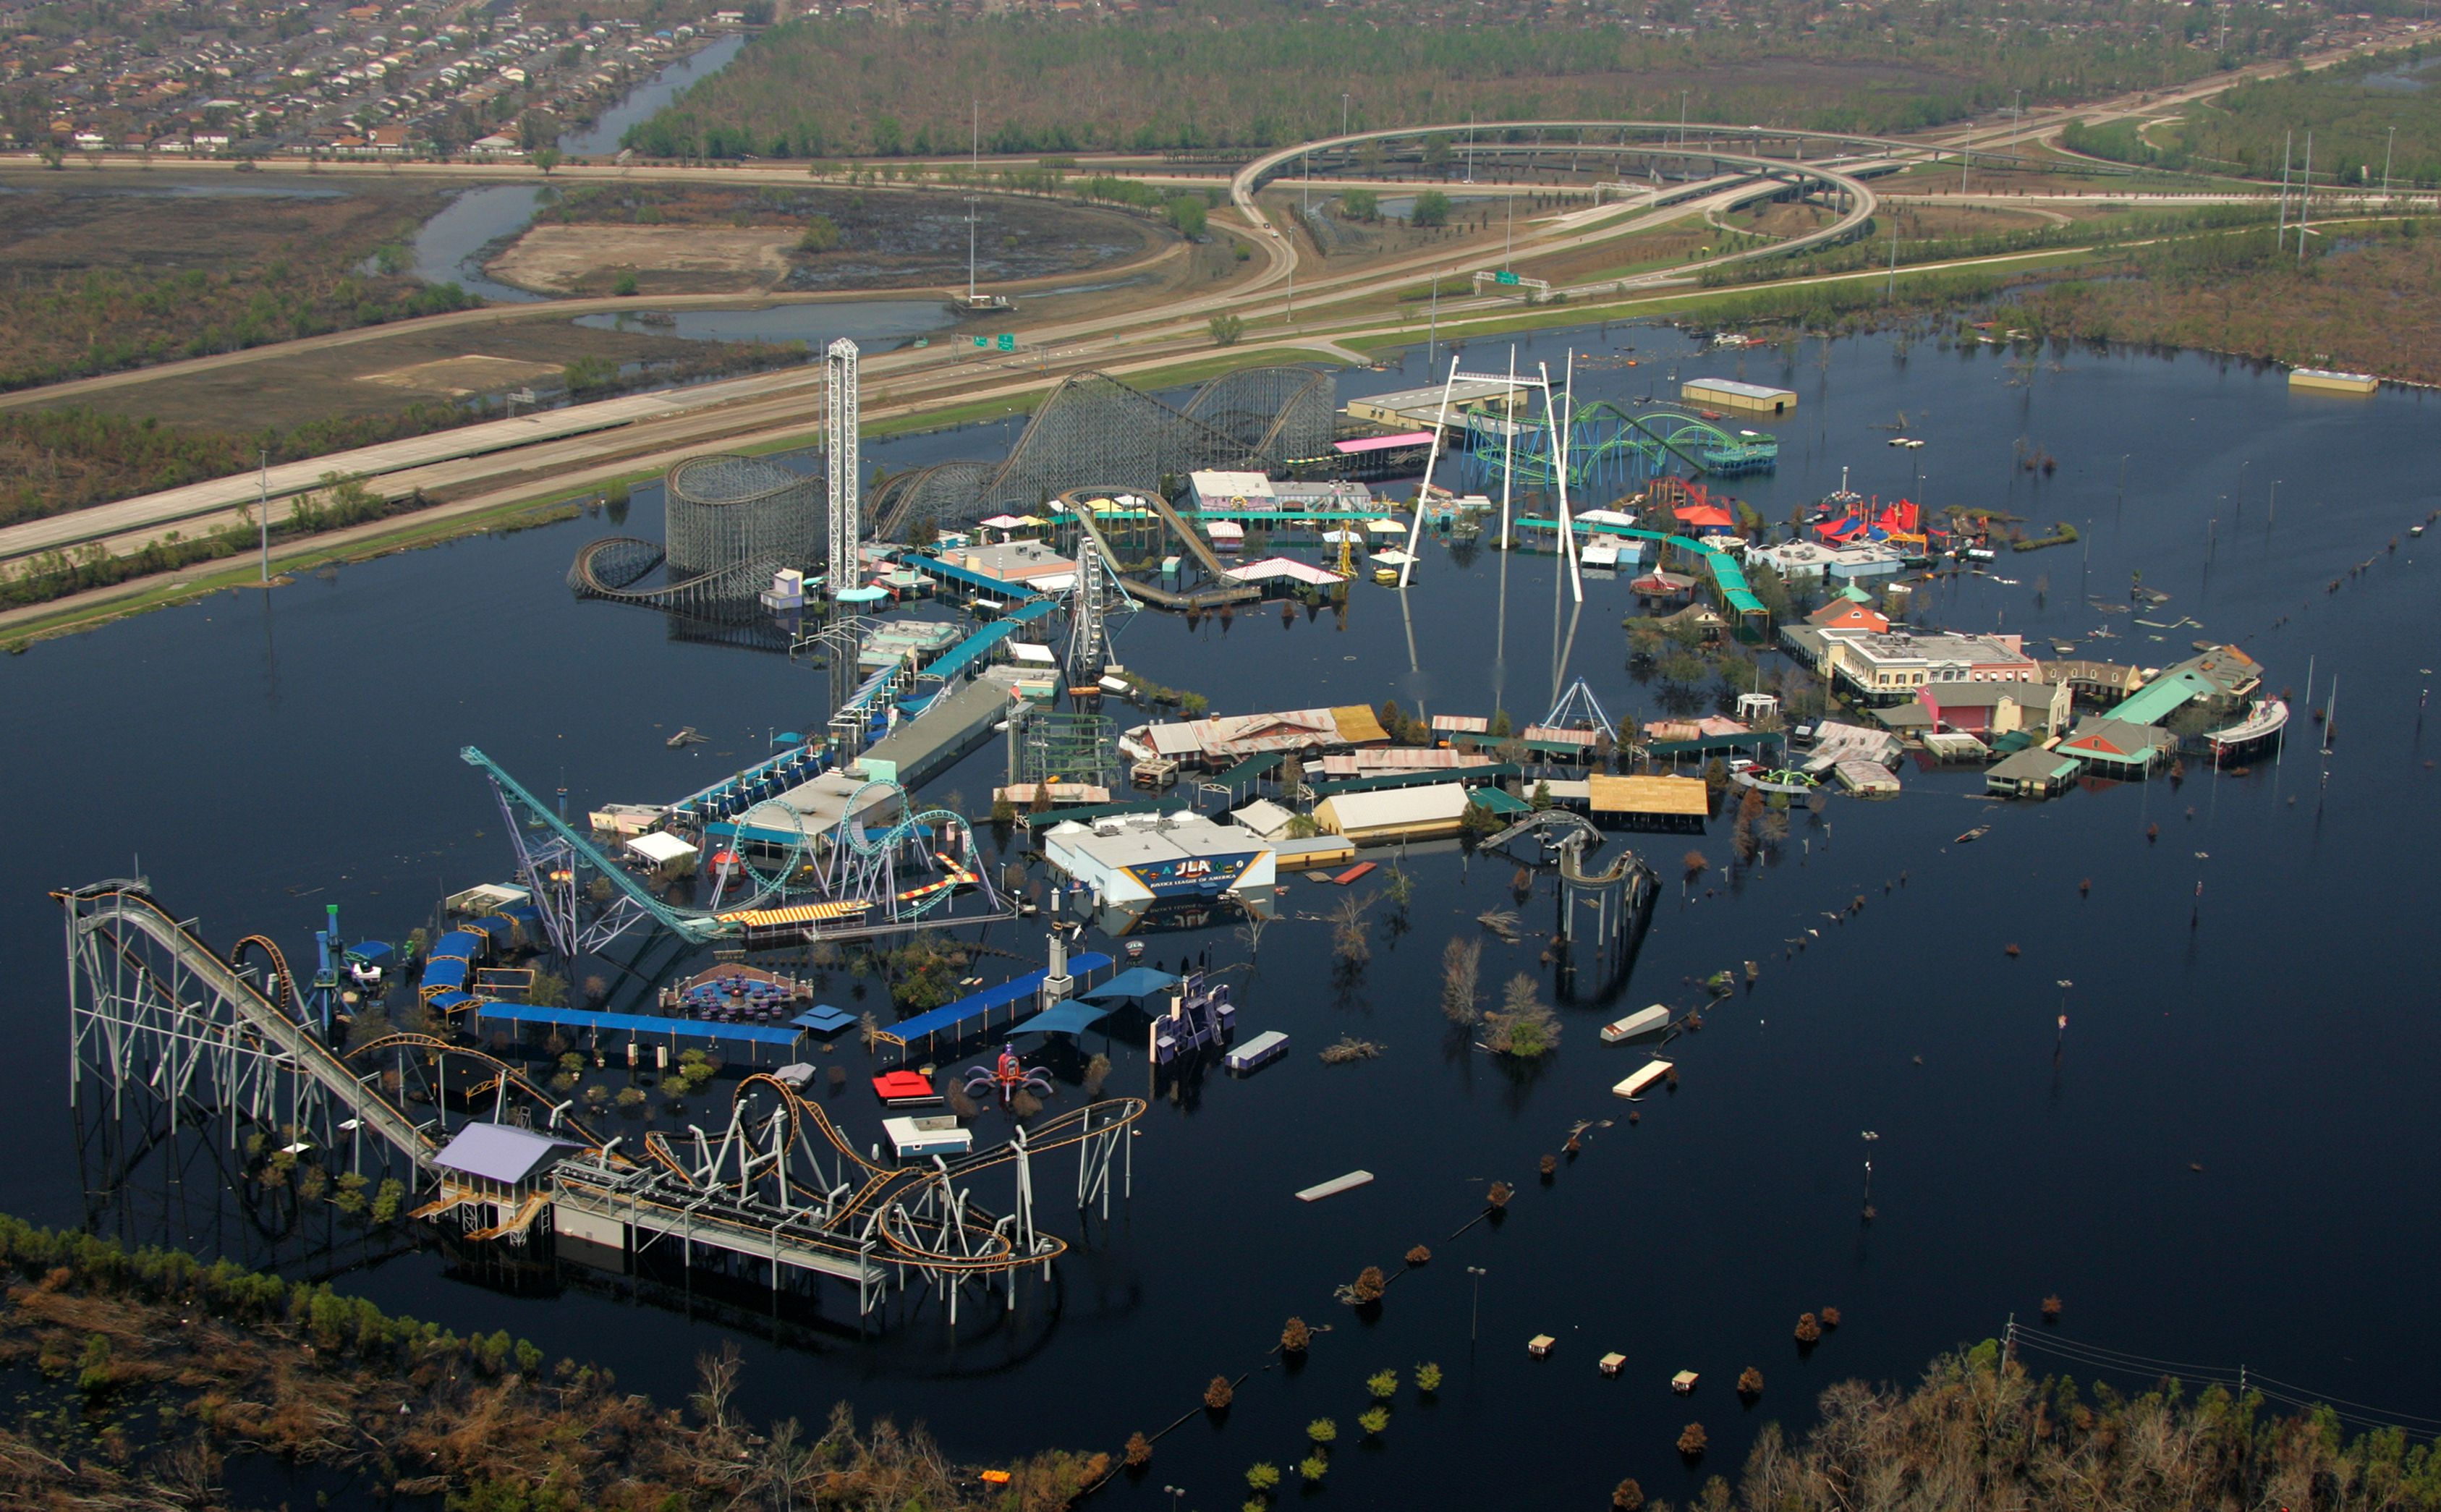 News Jurassic World To Film At Six Flags New Orleans Abandoned